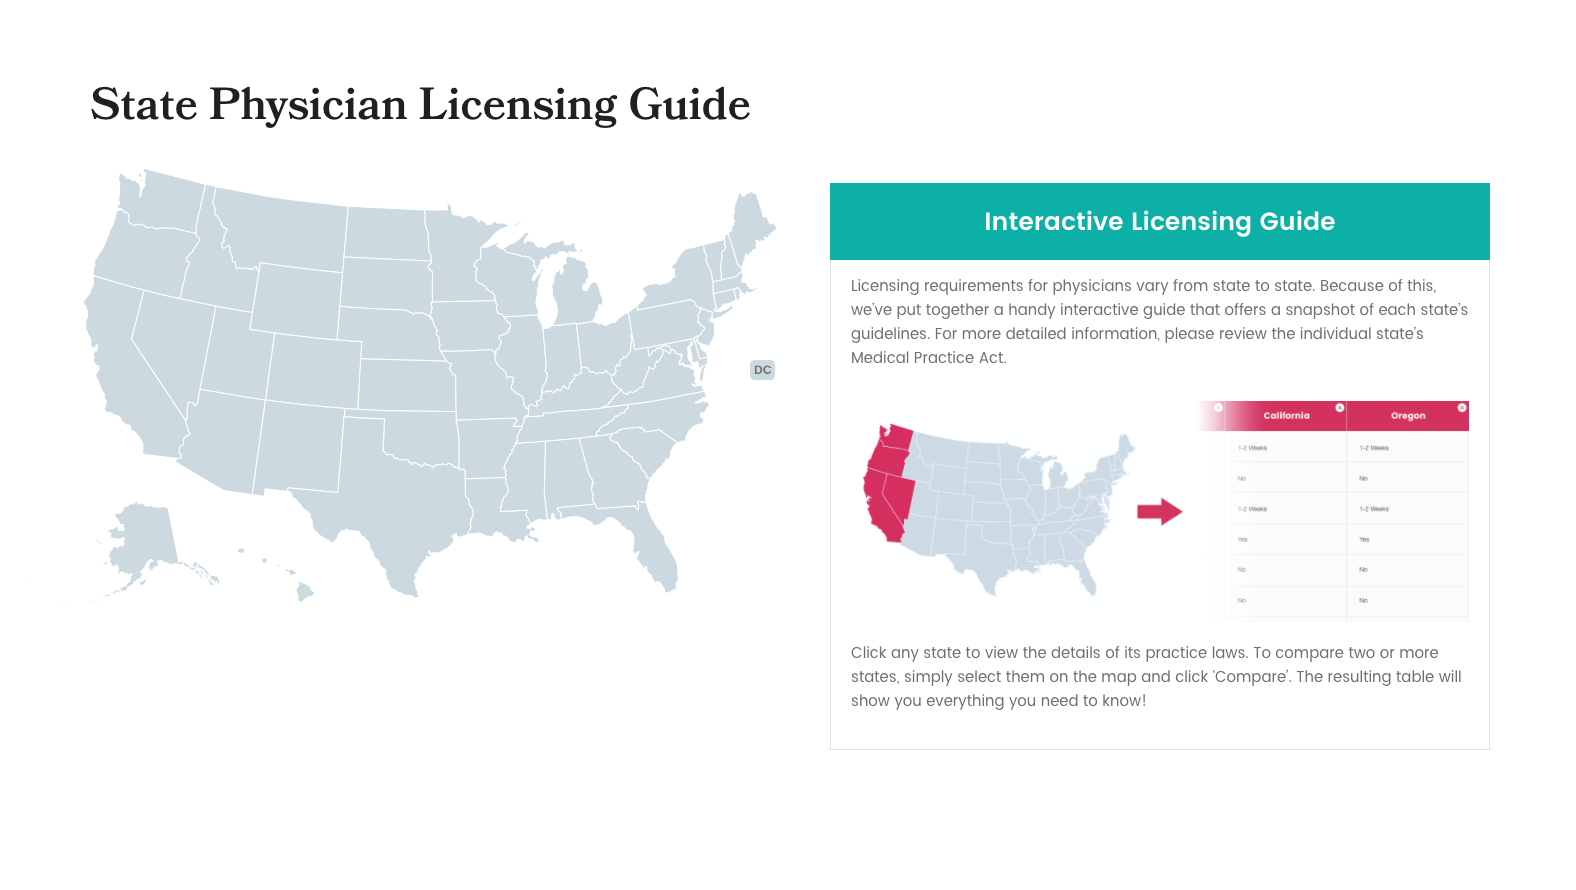 State Physician Licensing Guide